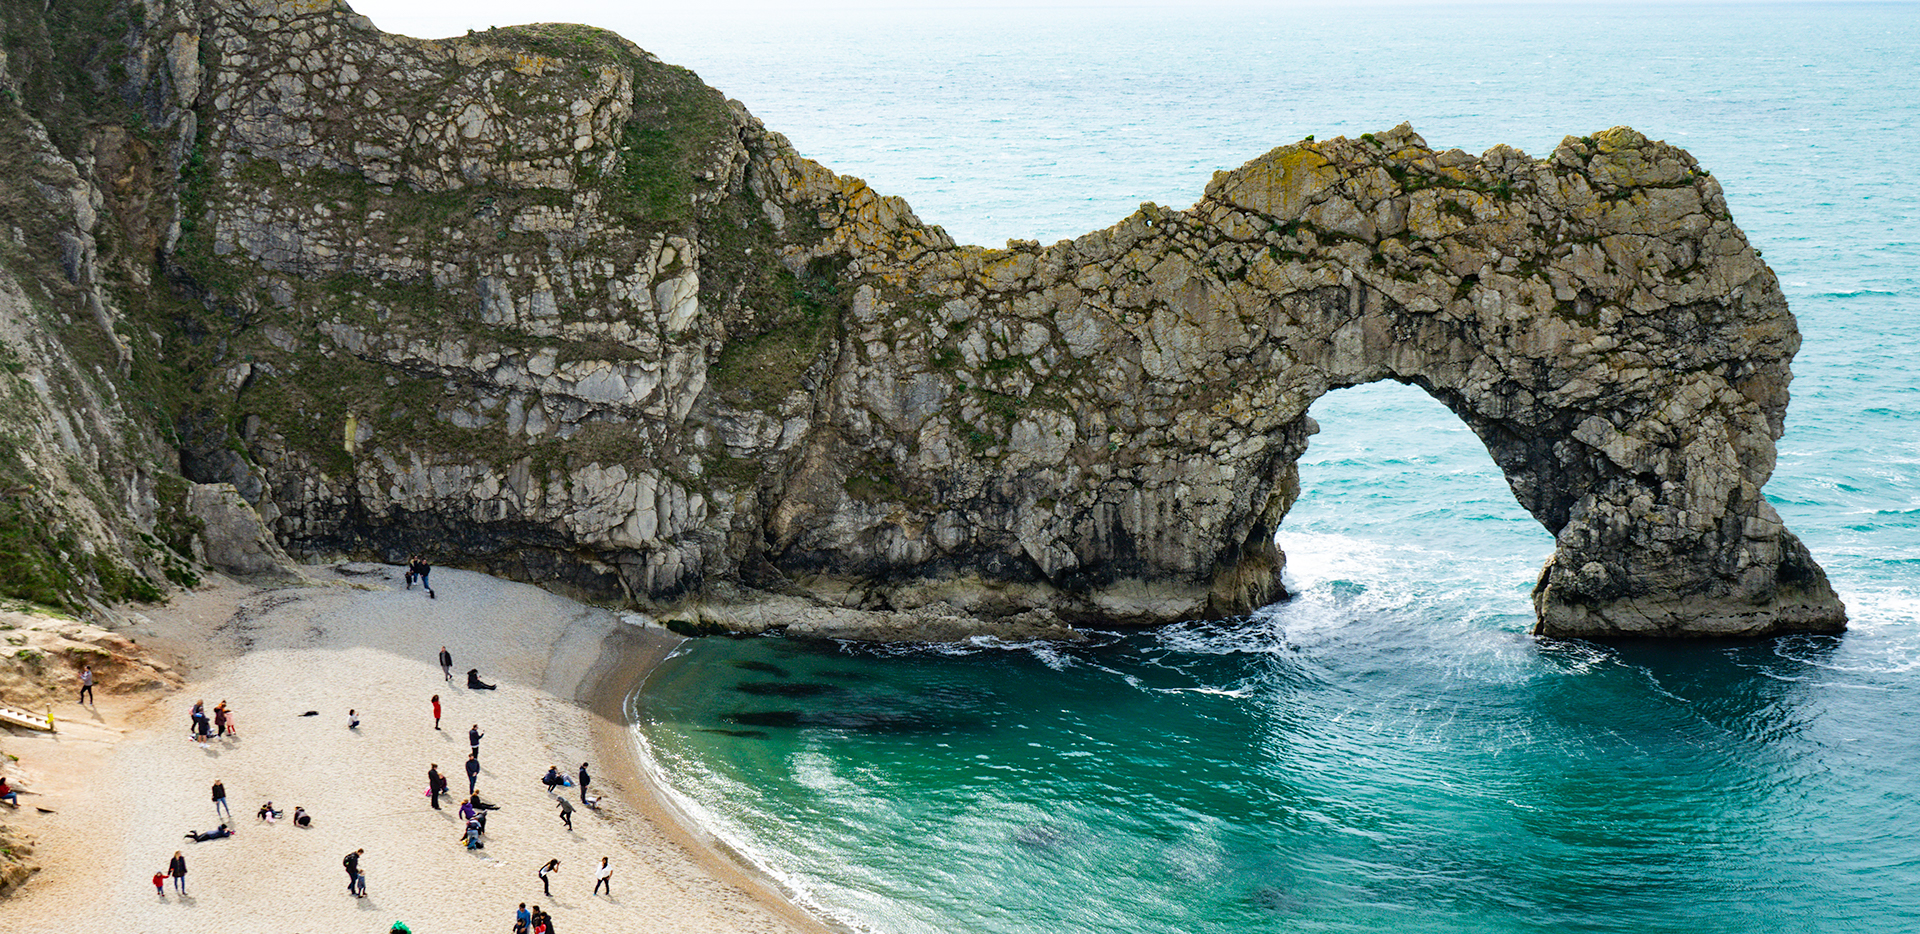 The Durdle Door and Beach